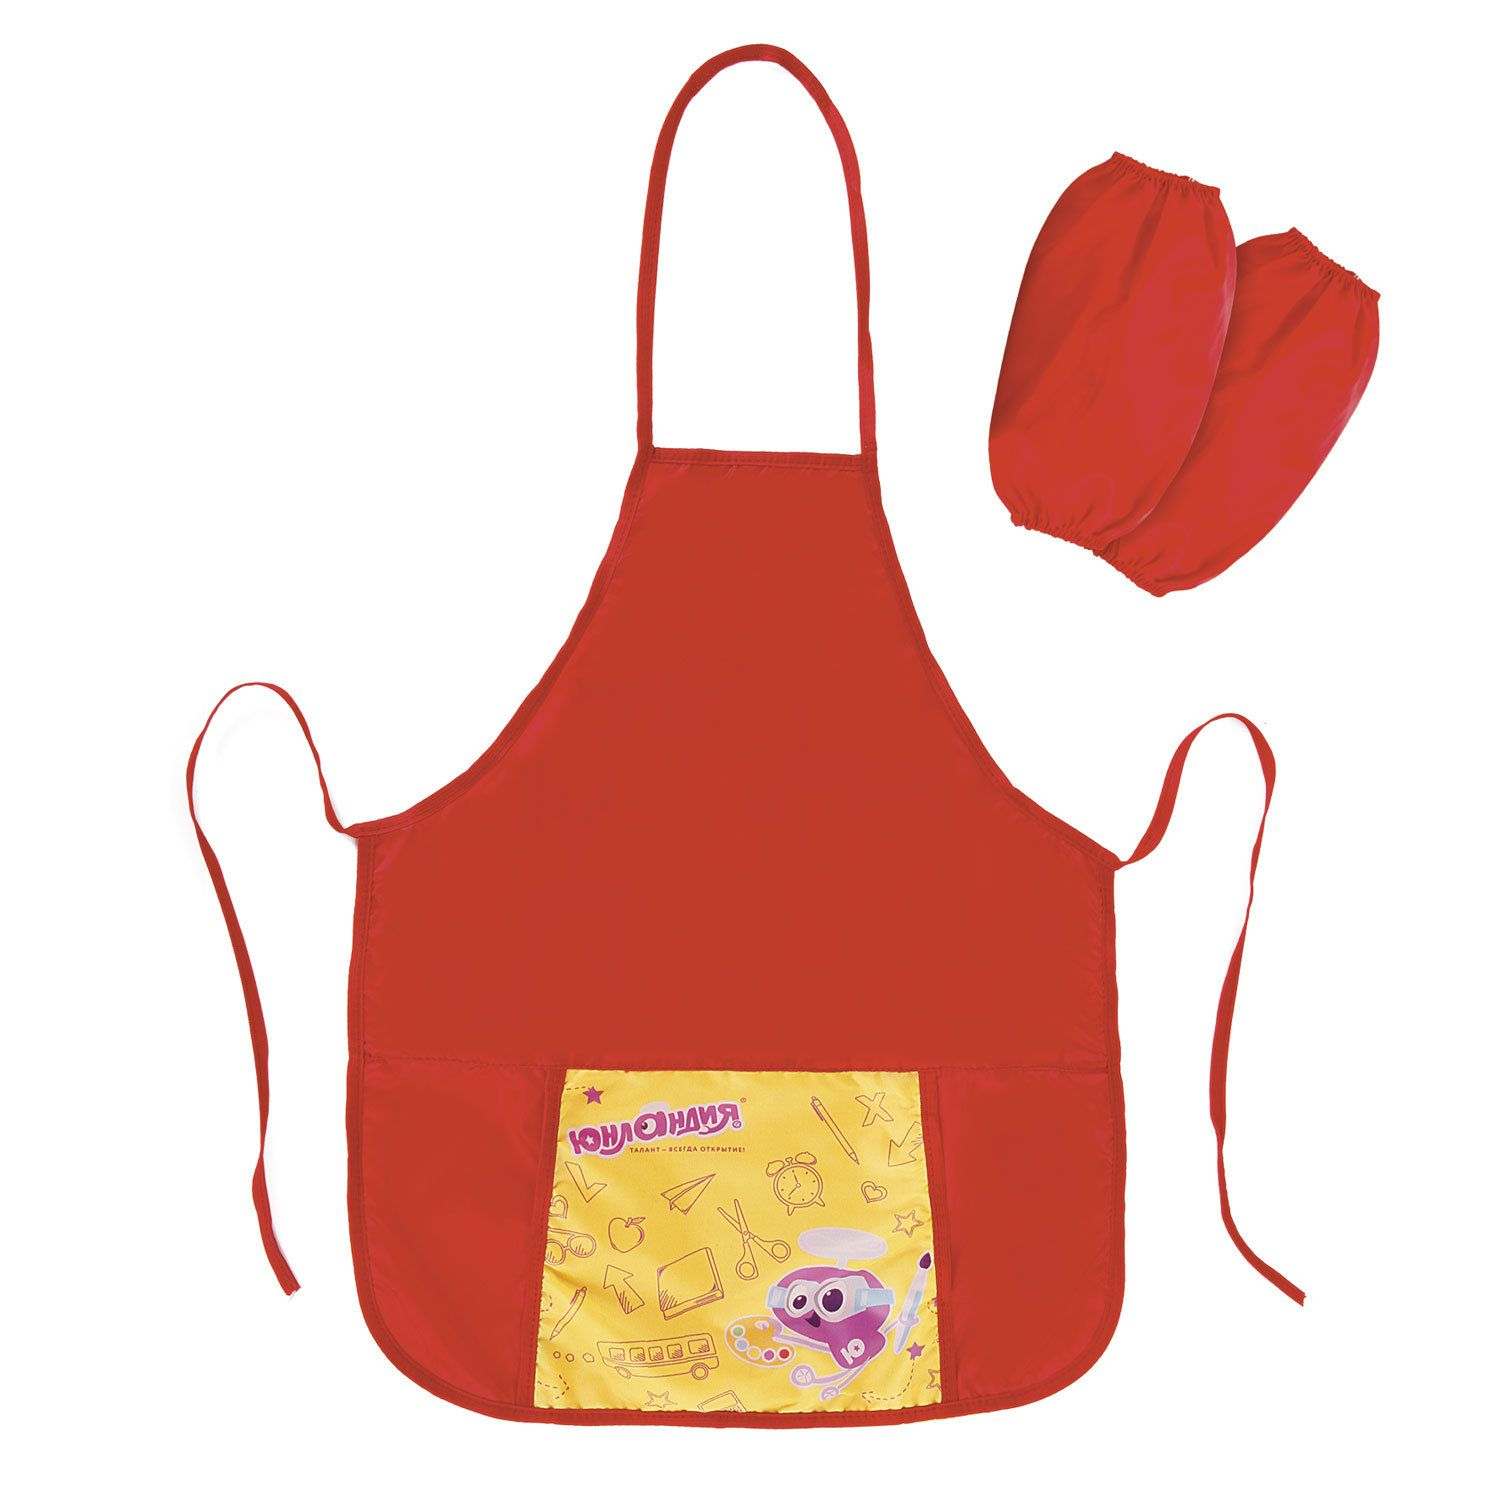 Apron for work and creative activities INLANDIA armbands, 44х55 cm, red